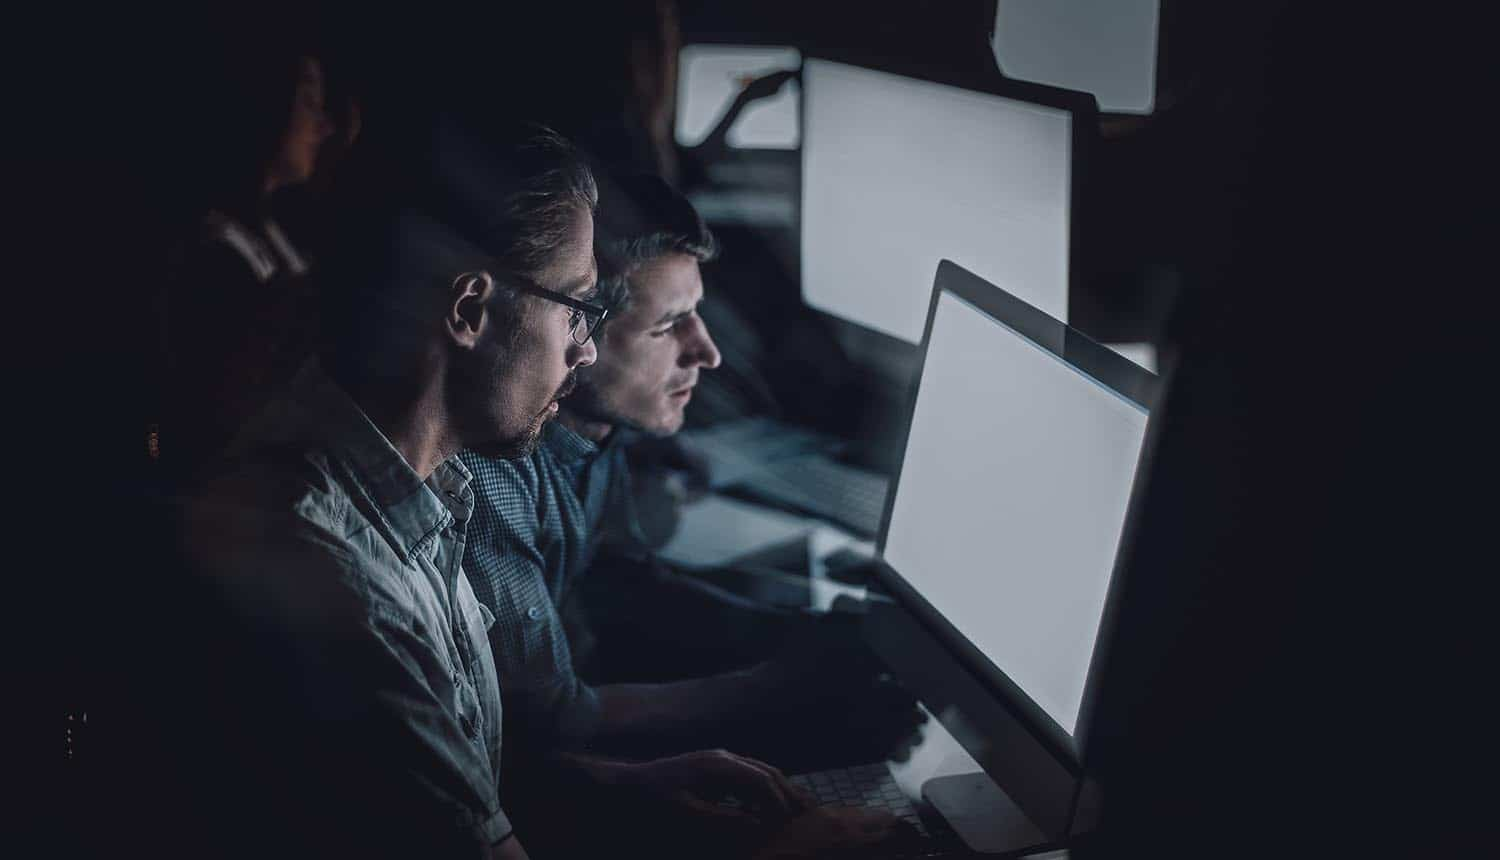 Dev team working on computers at night showing supply chain security